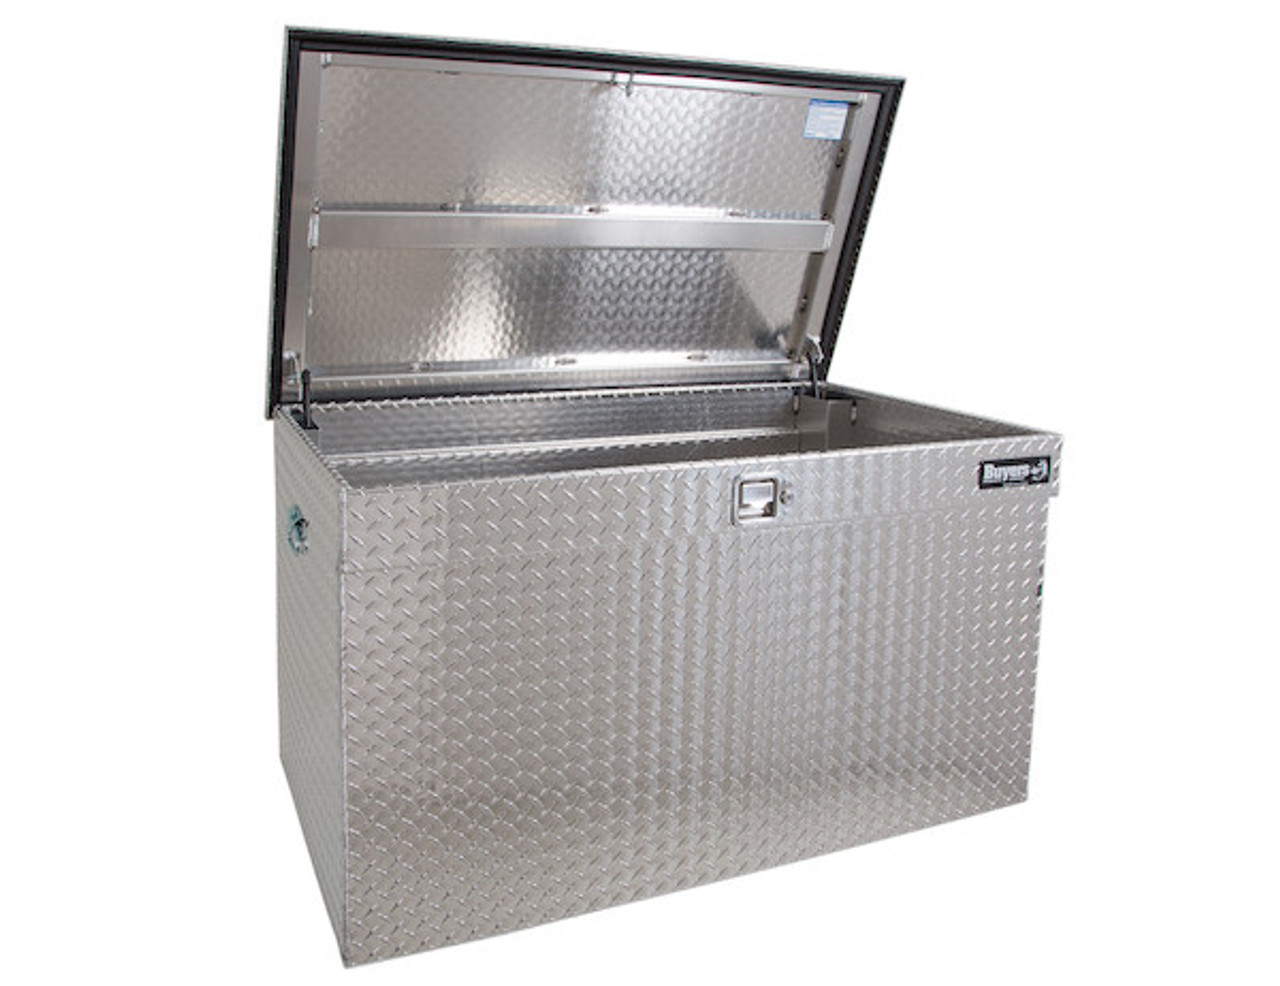 1712110 BUYERS DIAMOND TREAD ALUMINUM ALL-PURPOSE JUMBO CHEST TOOLBOX